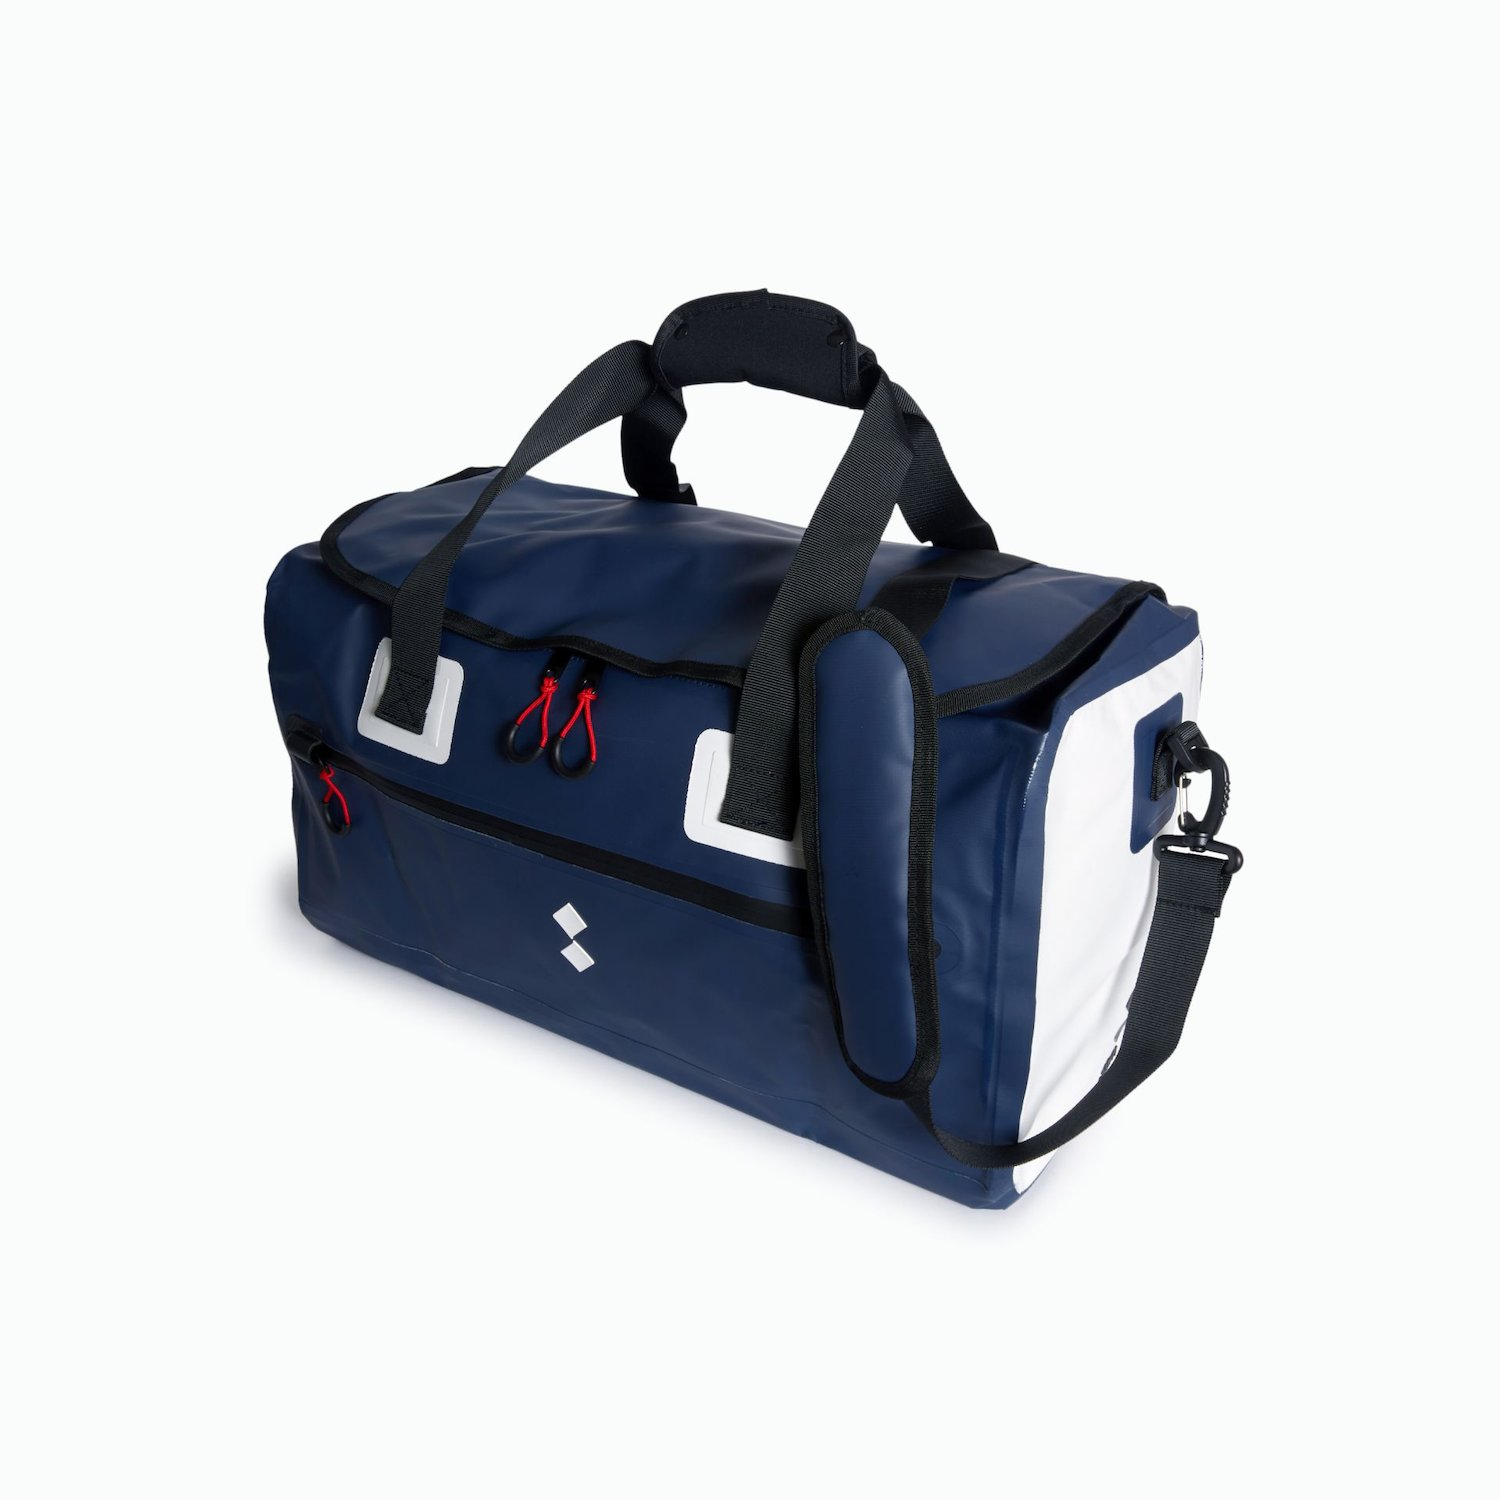 Wr Bag 4 Evo - Navy